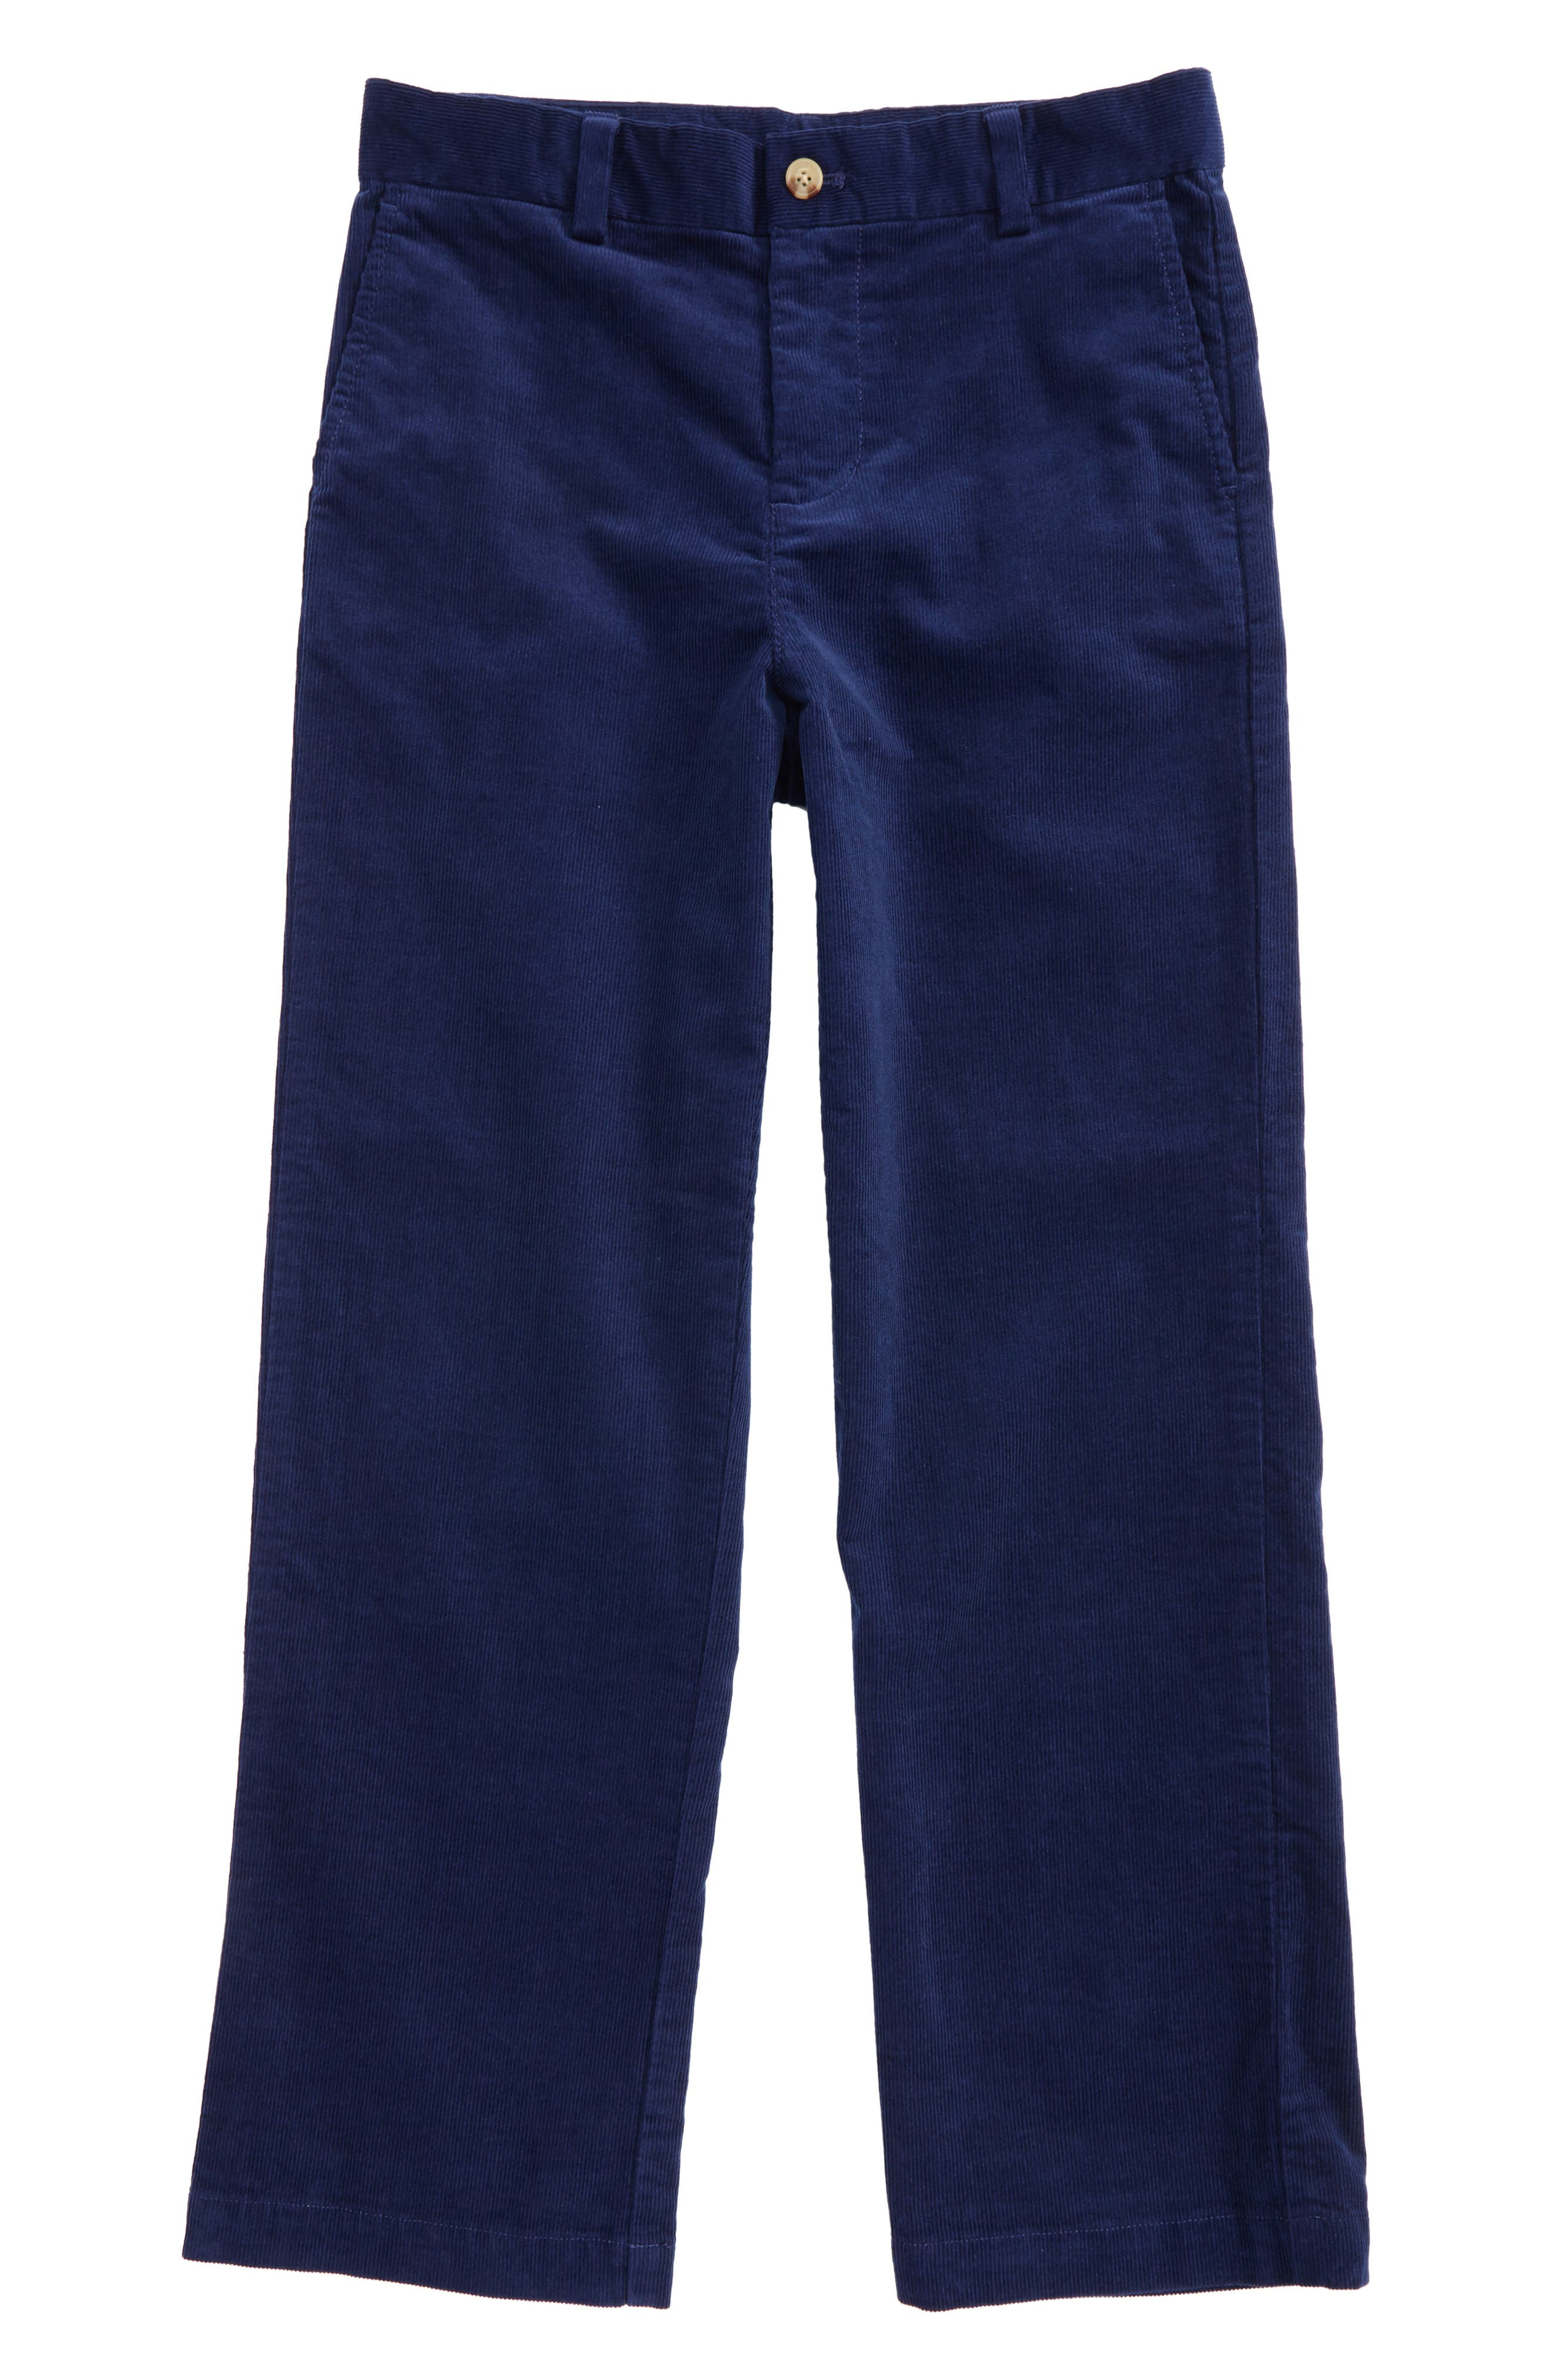 Breaker Corduroy Pants,                             Main thumbnail 2, color,